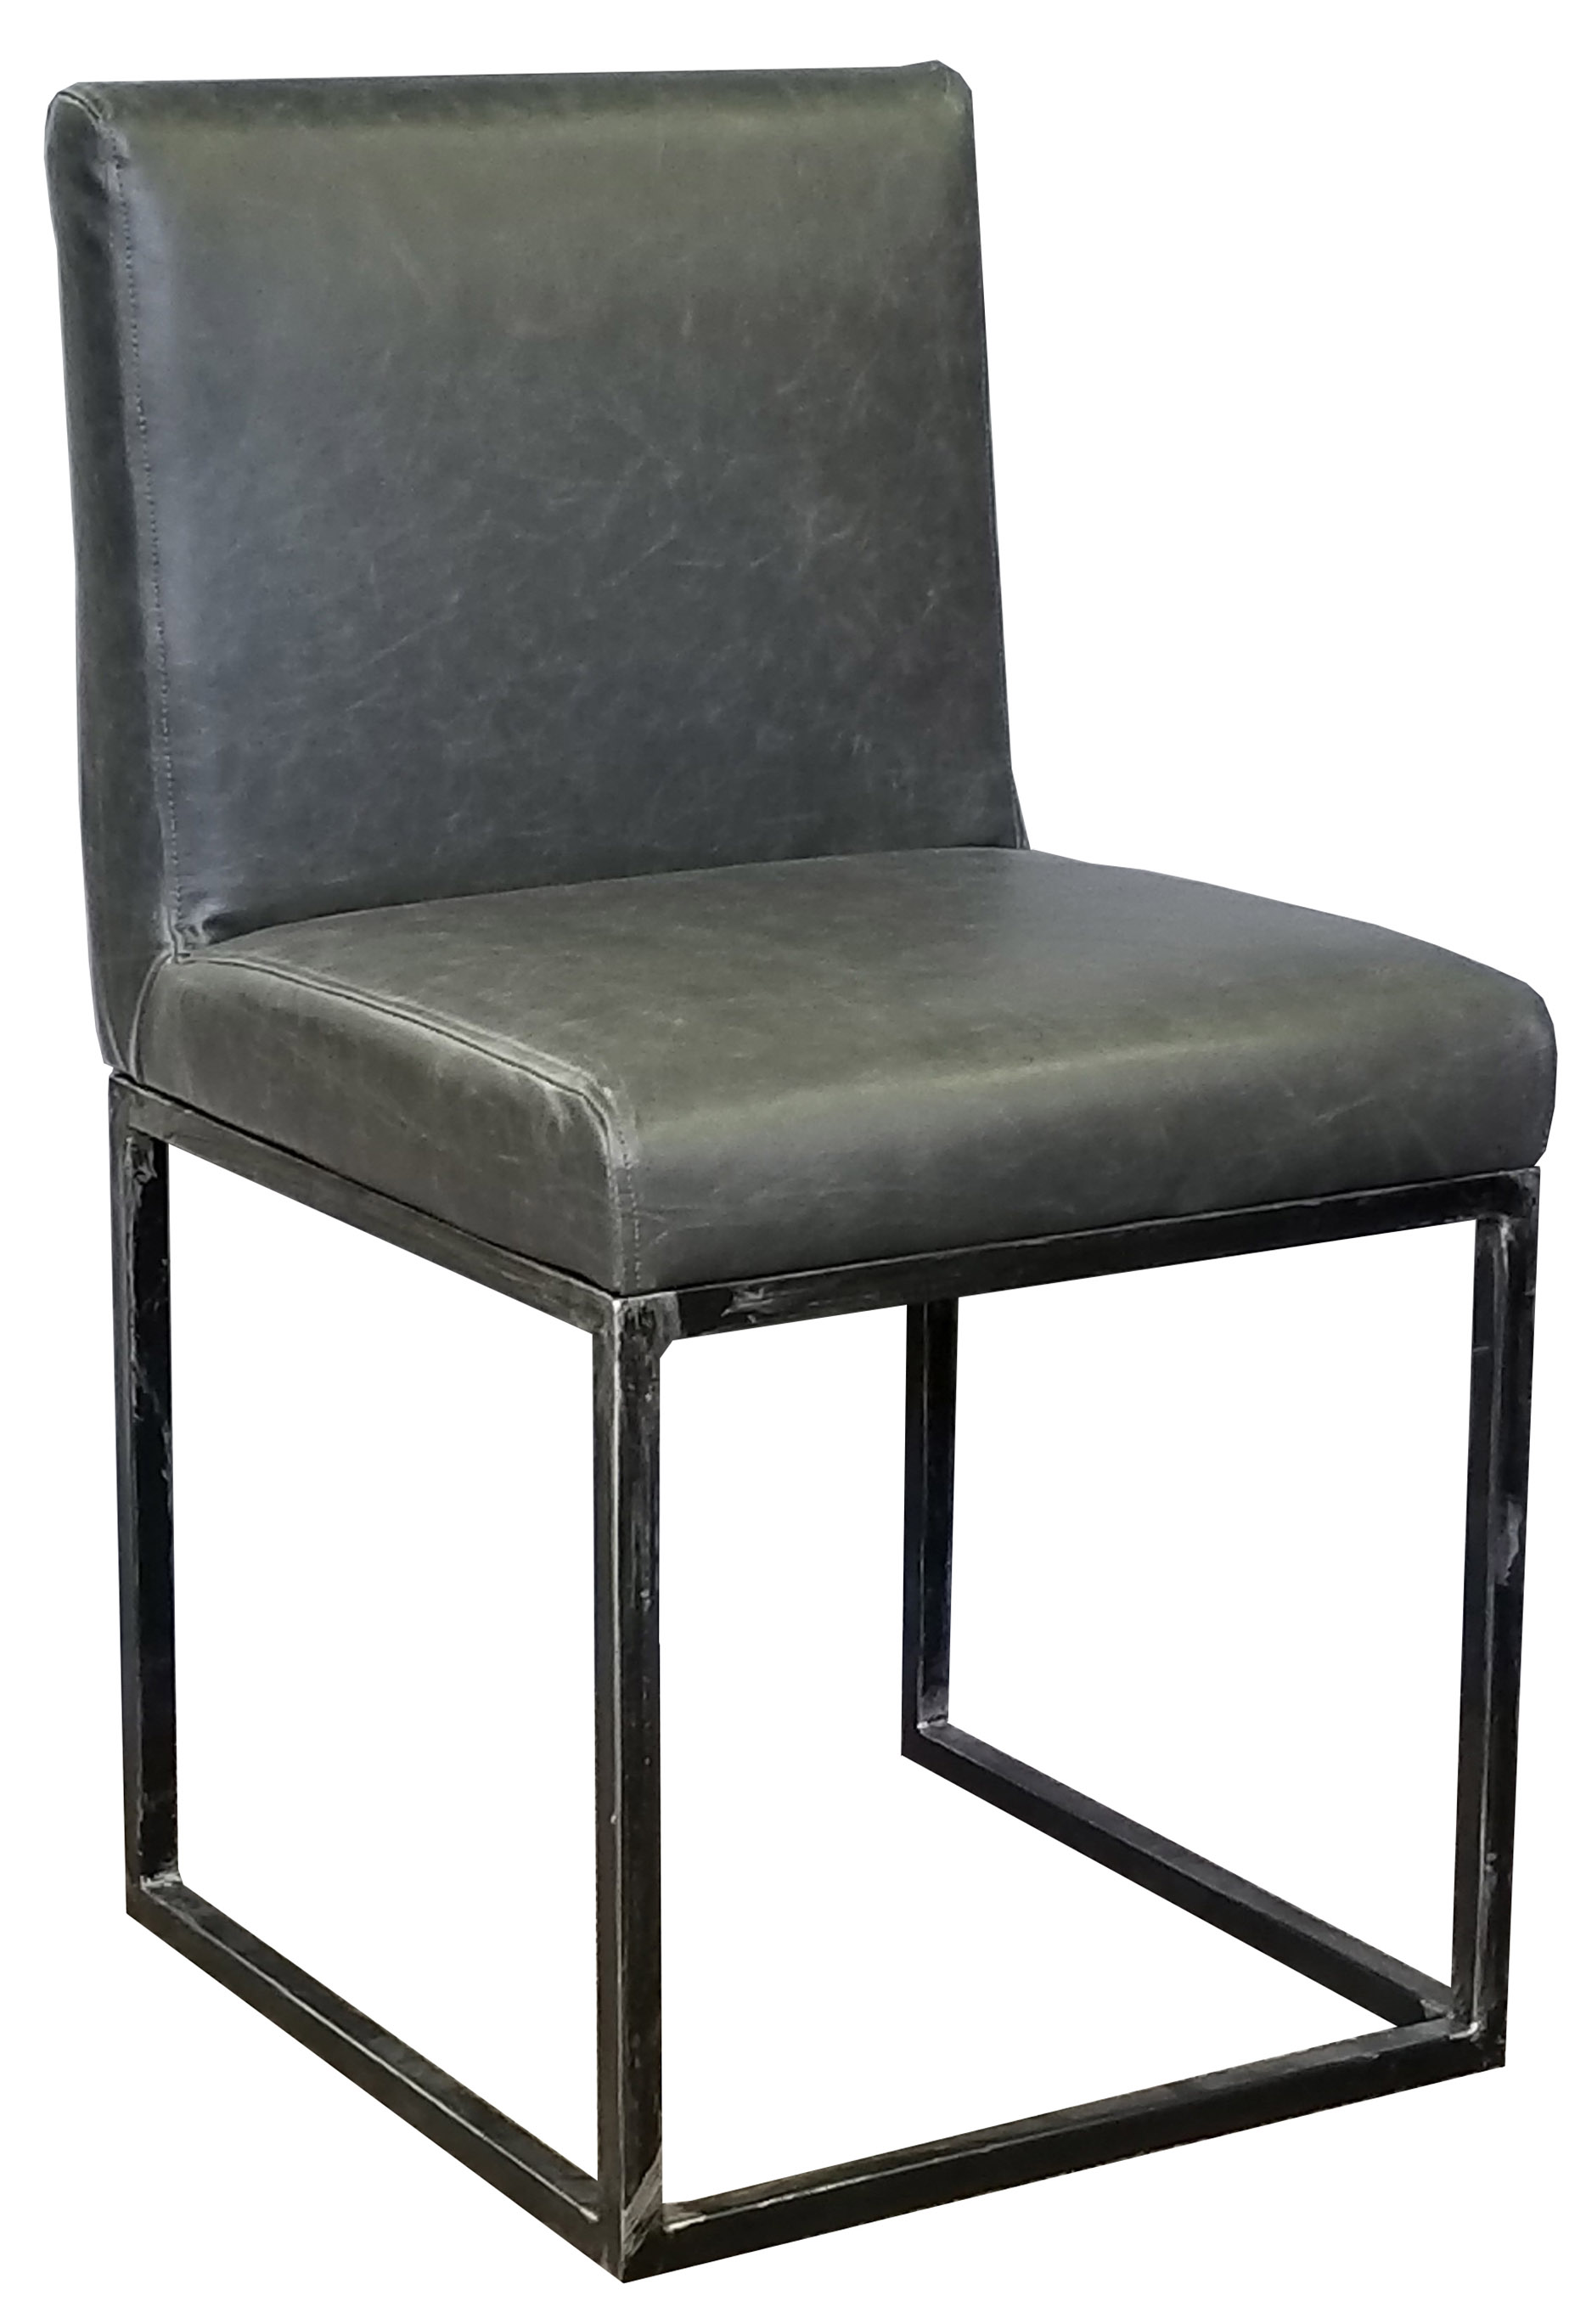 More Clearance Restaurant Chair In Black Leather W